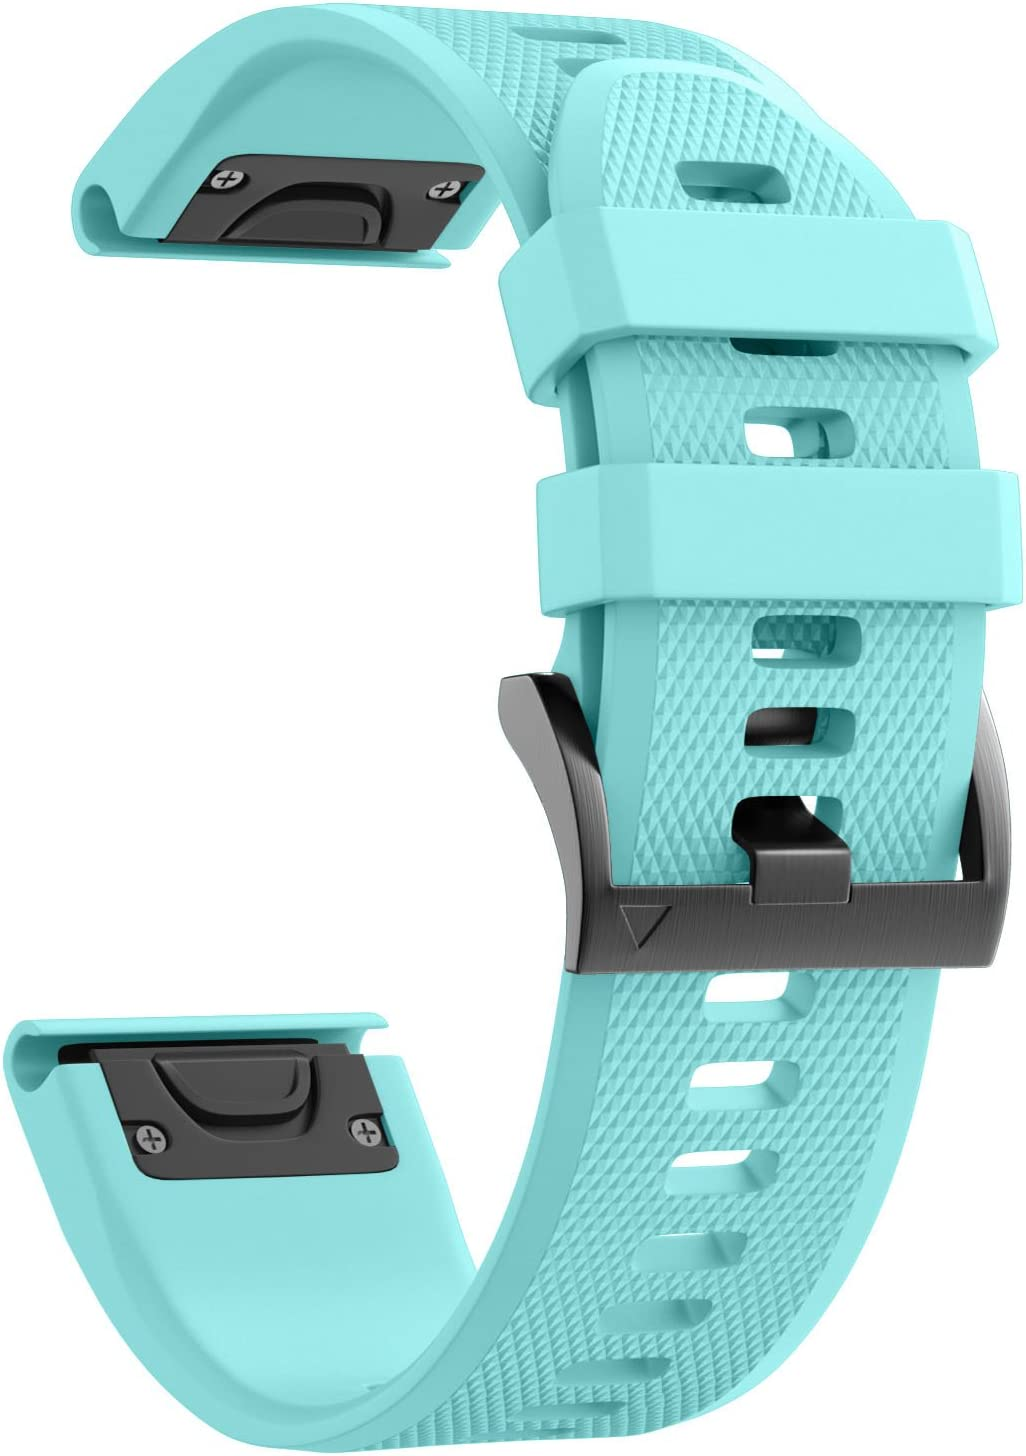 ANCOOL Compatible with Fenix 5 Band Easy Fit 22mm Width Soft Silicone Watch Strap Replacement for Fenix 5/Fenix 5 Plus/Forerunner 935/Approach S60/Quatix 5 - Mint